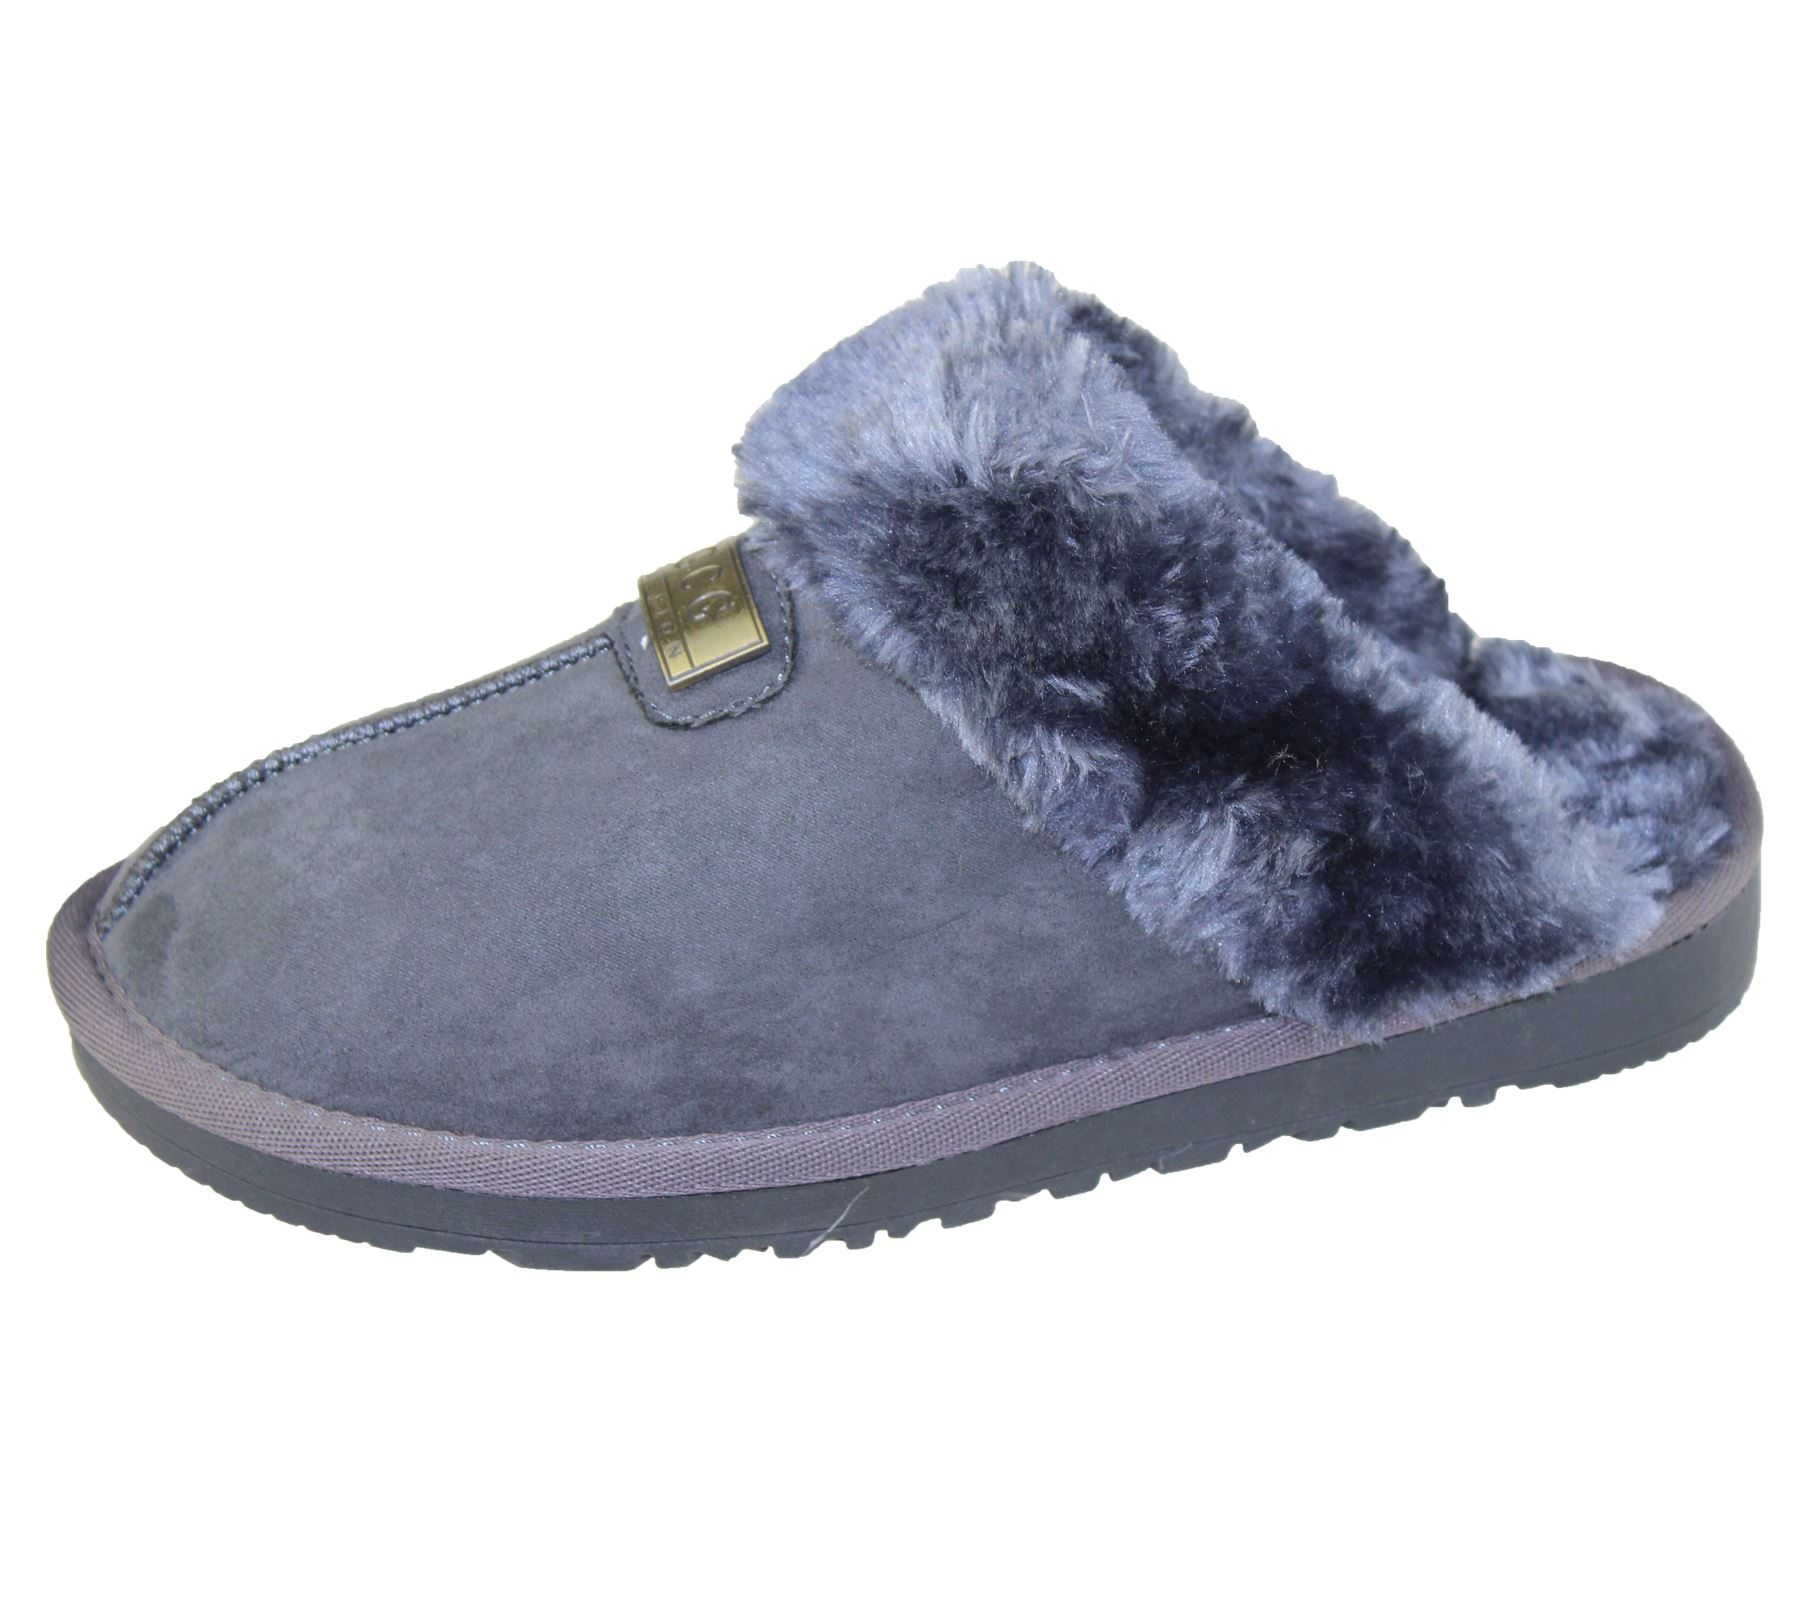 Womens-Fur-Lined-Slippers-Ladies-Mules-Non-Slip-Rubber-Sole-Shoes miniatura 36